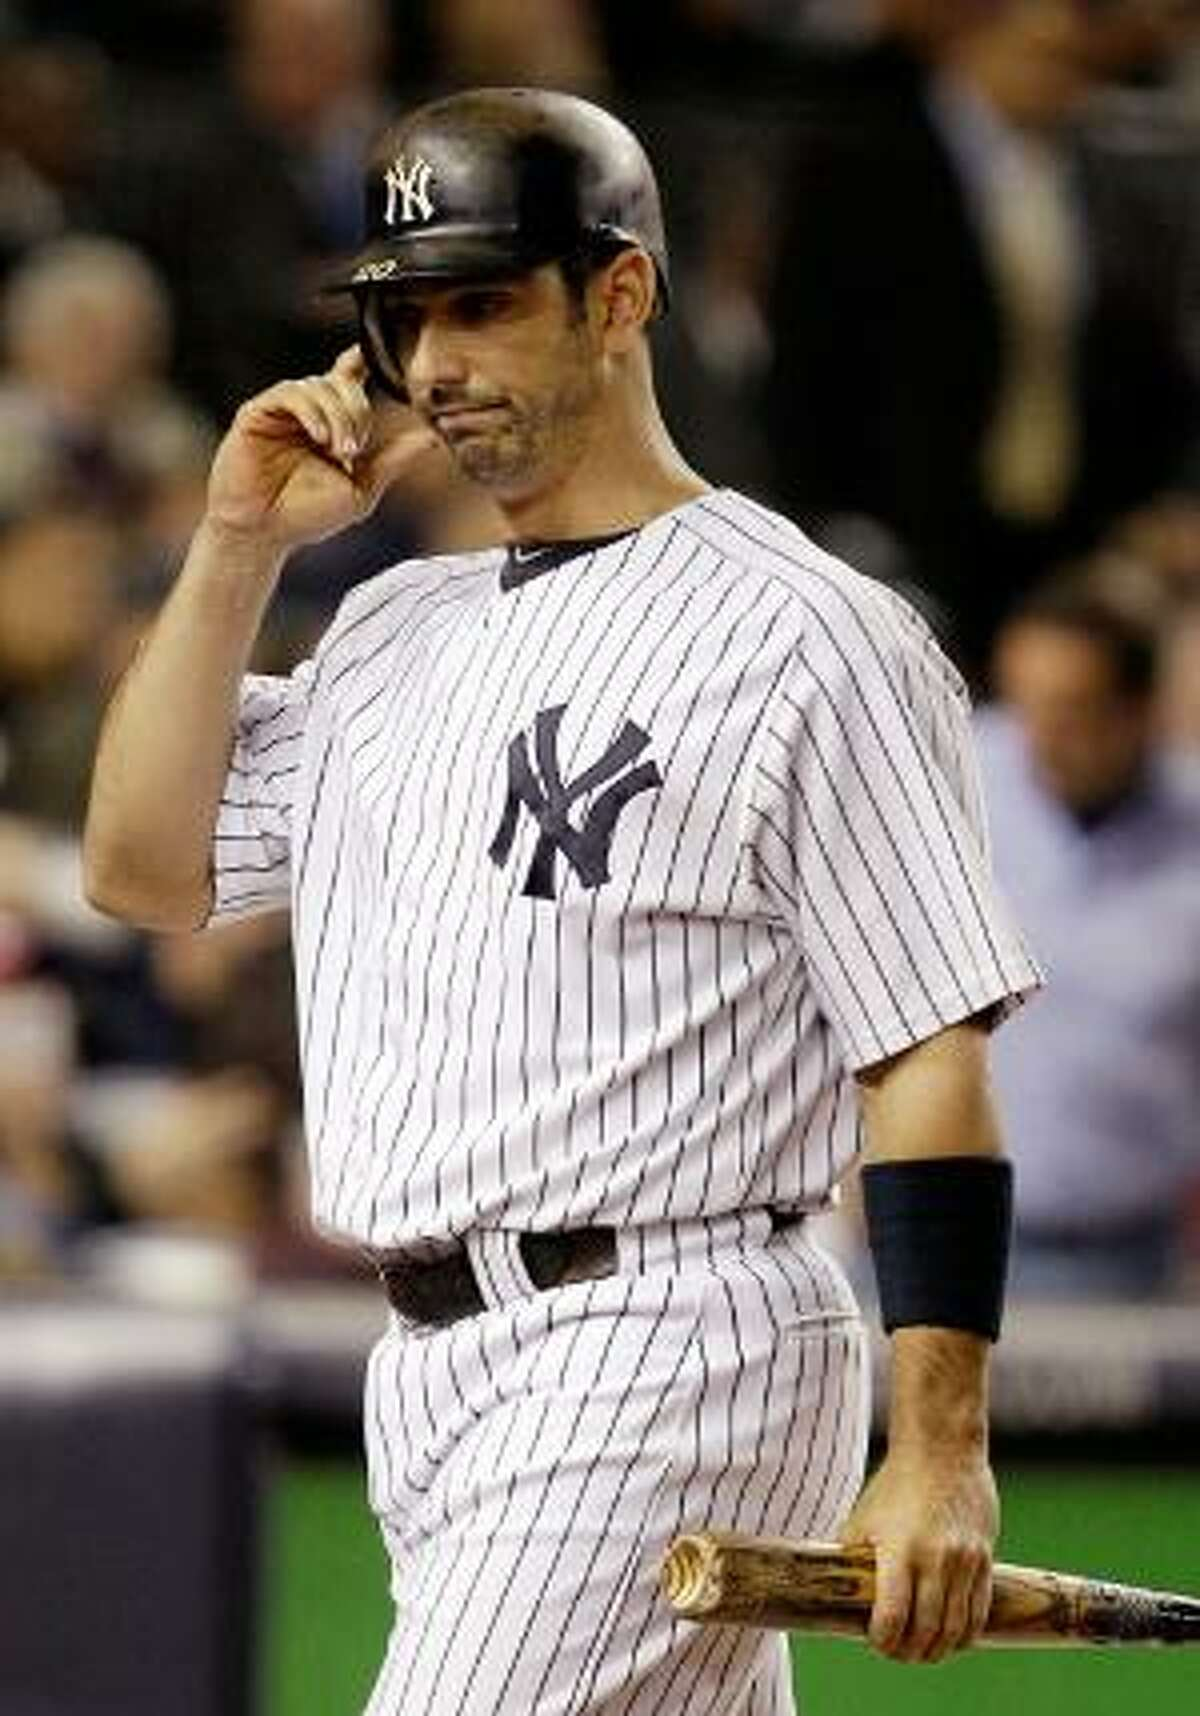 ASSOCIATED PRESS In this Oct. 6, 2011, file photo, New York Yankees designated hitter Jorge Posada prepares to remove his batting helmet after striking out in his final at bat in Game 5 of the American League Division Series in New York. A source told the AP that Possda plans to announce his retirement this month.